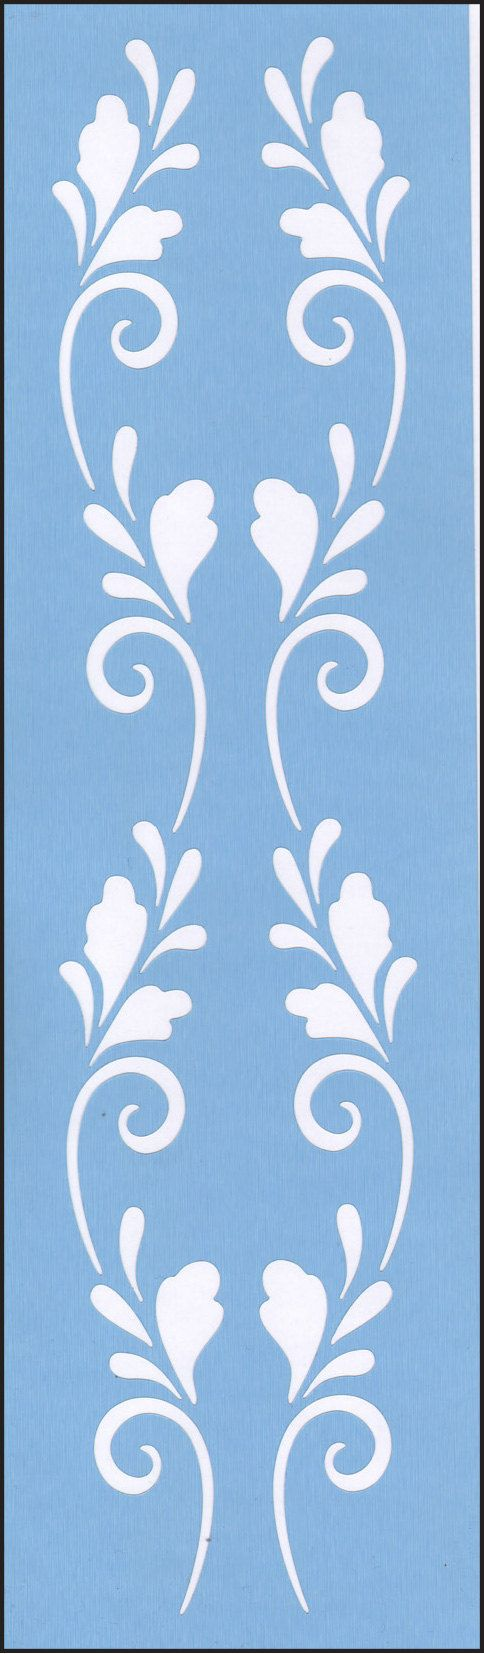 14 best stencils images on pinterest beautiful patterns scandinavian double scroll blue laser border by giftchaletauburn 1200 stencil artstencil designsstencil amipublicfo Image collections